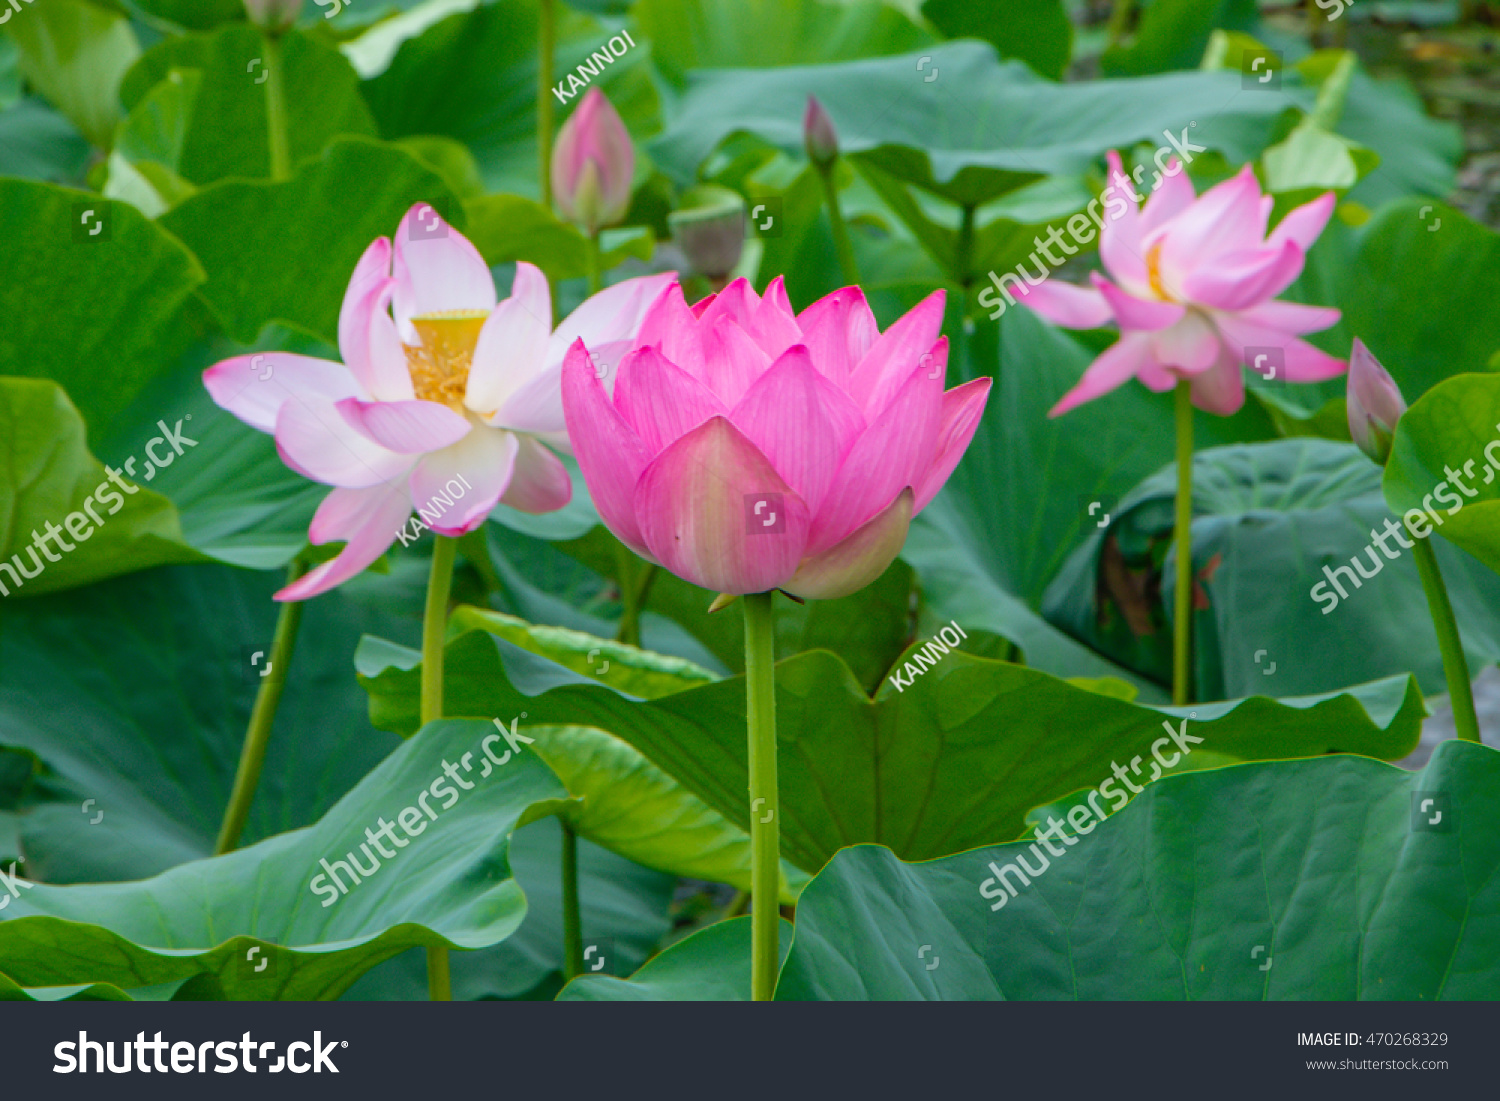 Selective Focus Blurred Pink Lotus Flower Stock Photo Edit Now